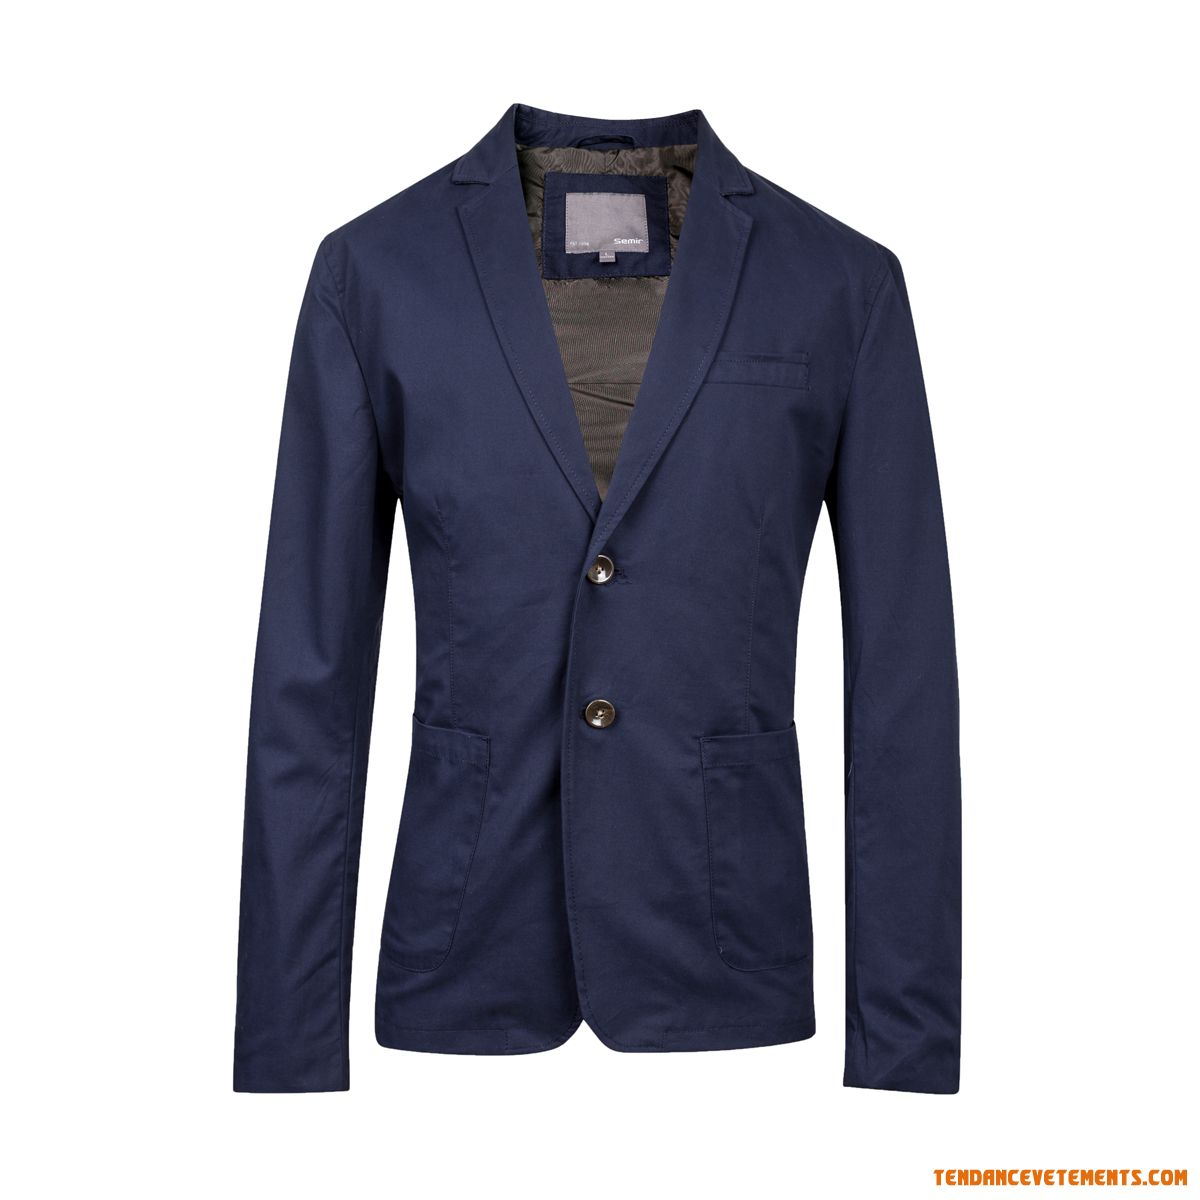 Blazer Homme Bleu Jaune 2015 Automne Fashion Simple Mode